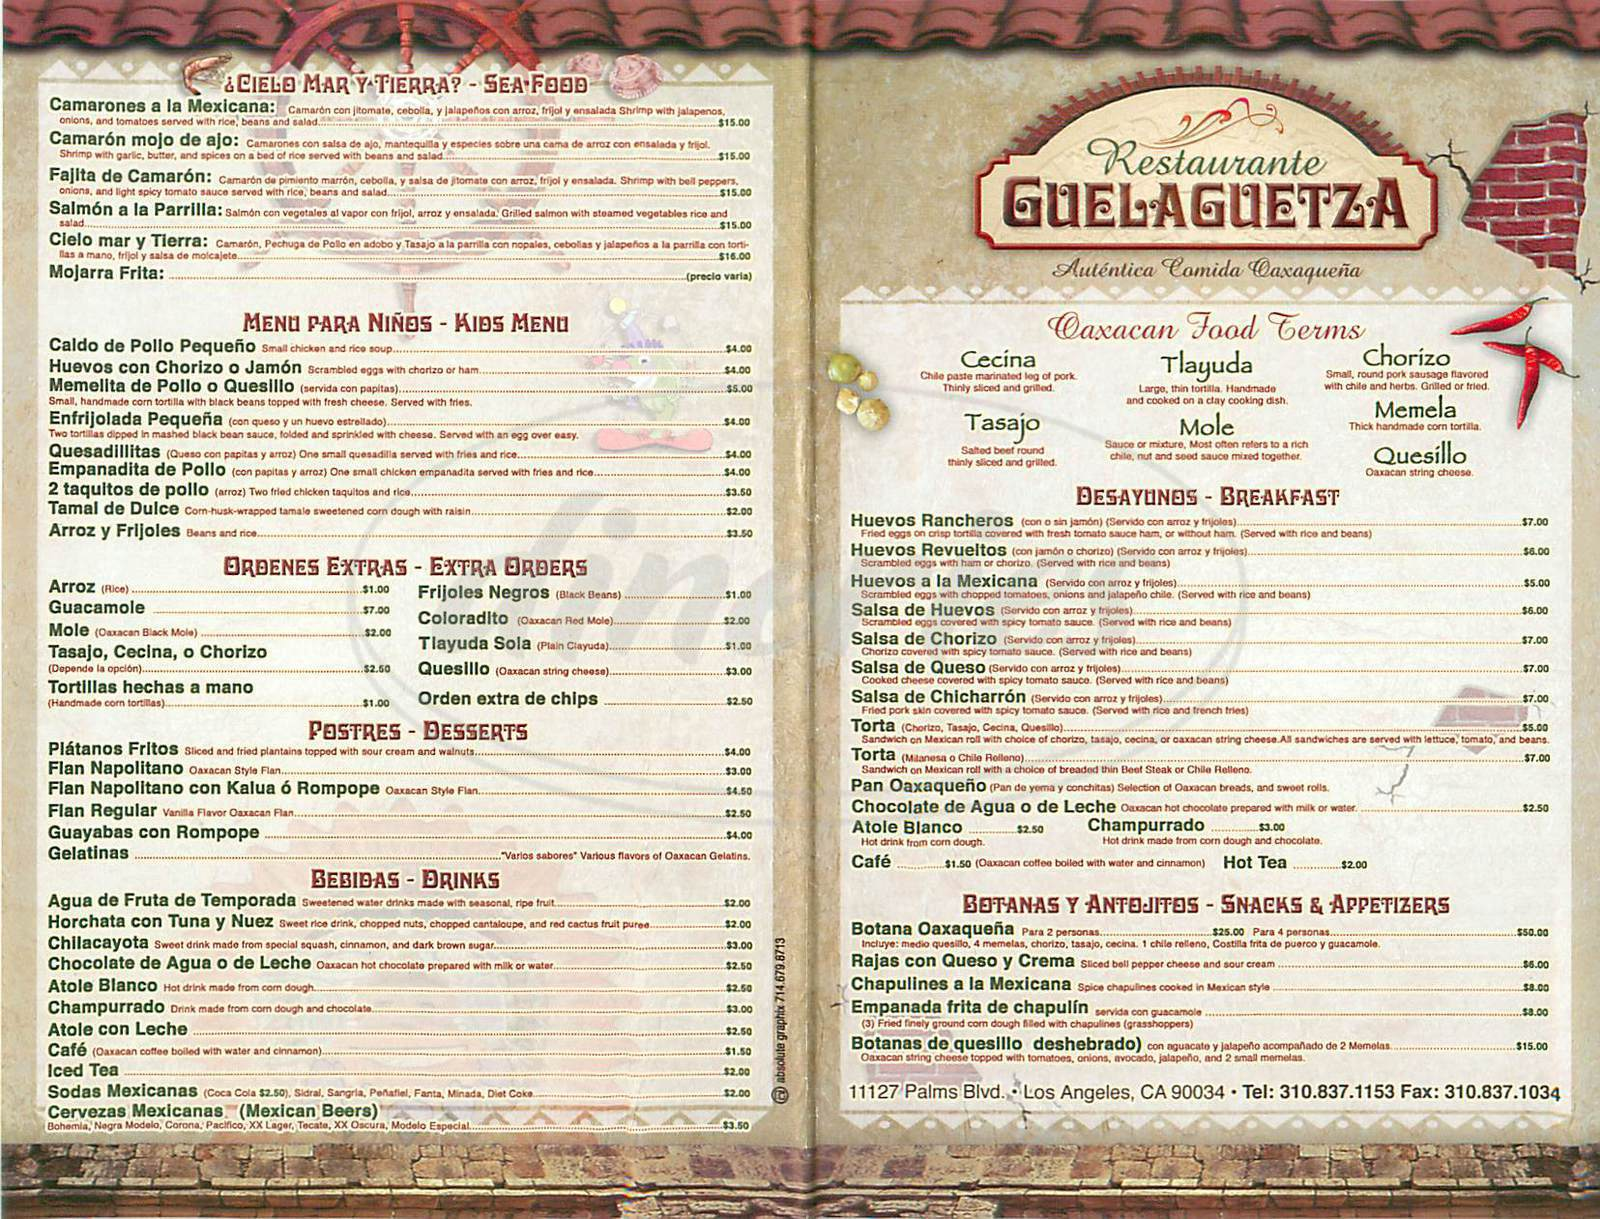 menu for Guelaguetza Palms Restaurant